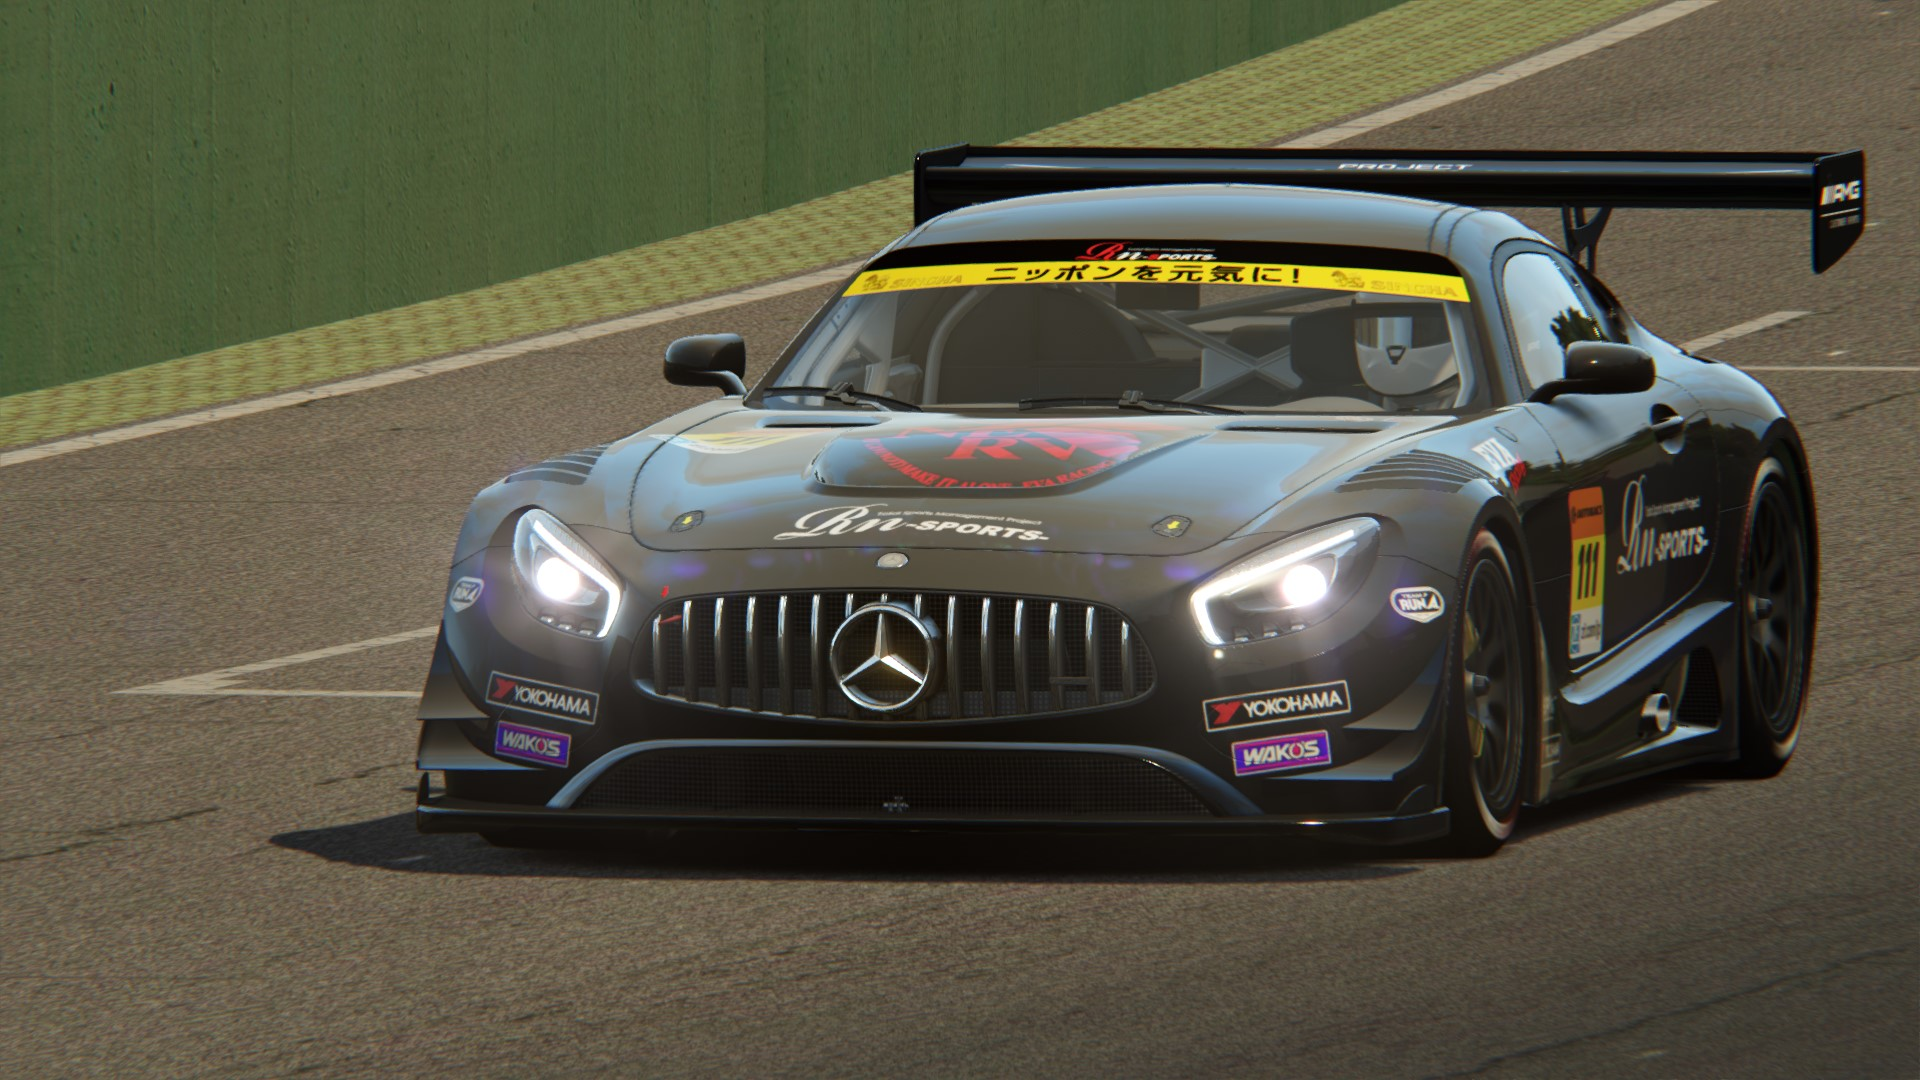 Screenshot_ks_mercedes_amg_gt3_ks_vallelunga_20-4-116-18-59-16.jpg